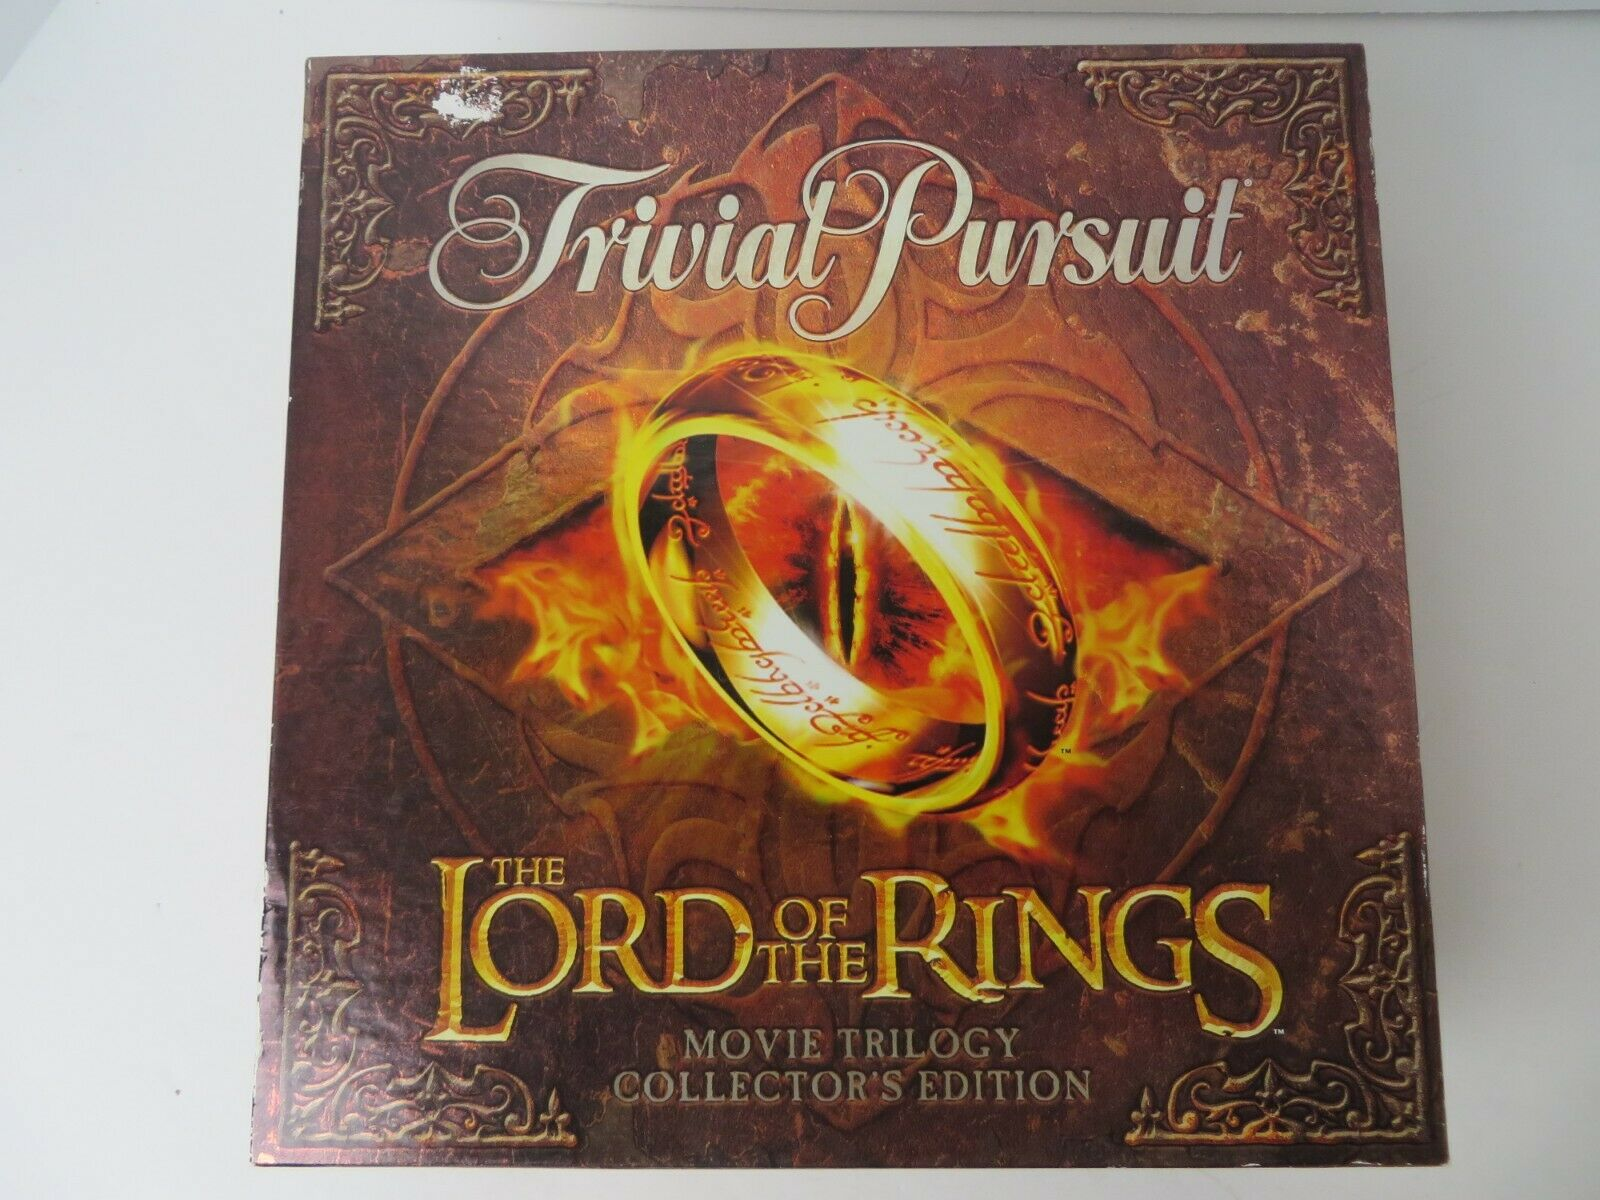 Lord of the Rings Trivial Pursuit Game Open Box Sealed Pieces Never Played  0327